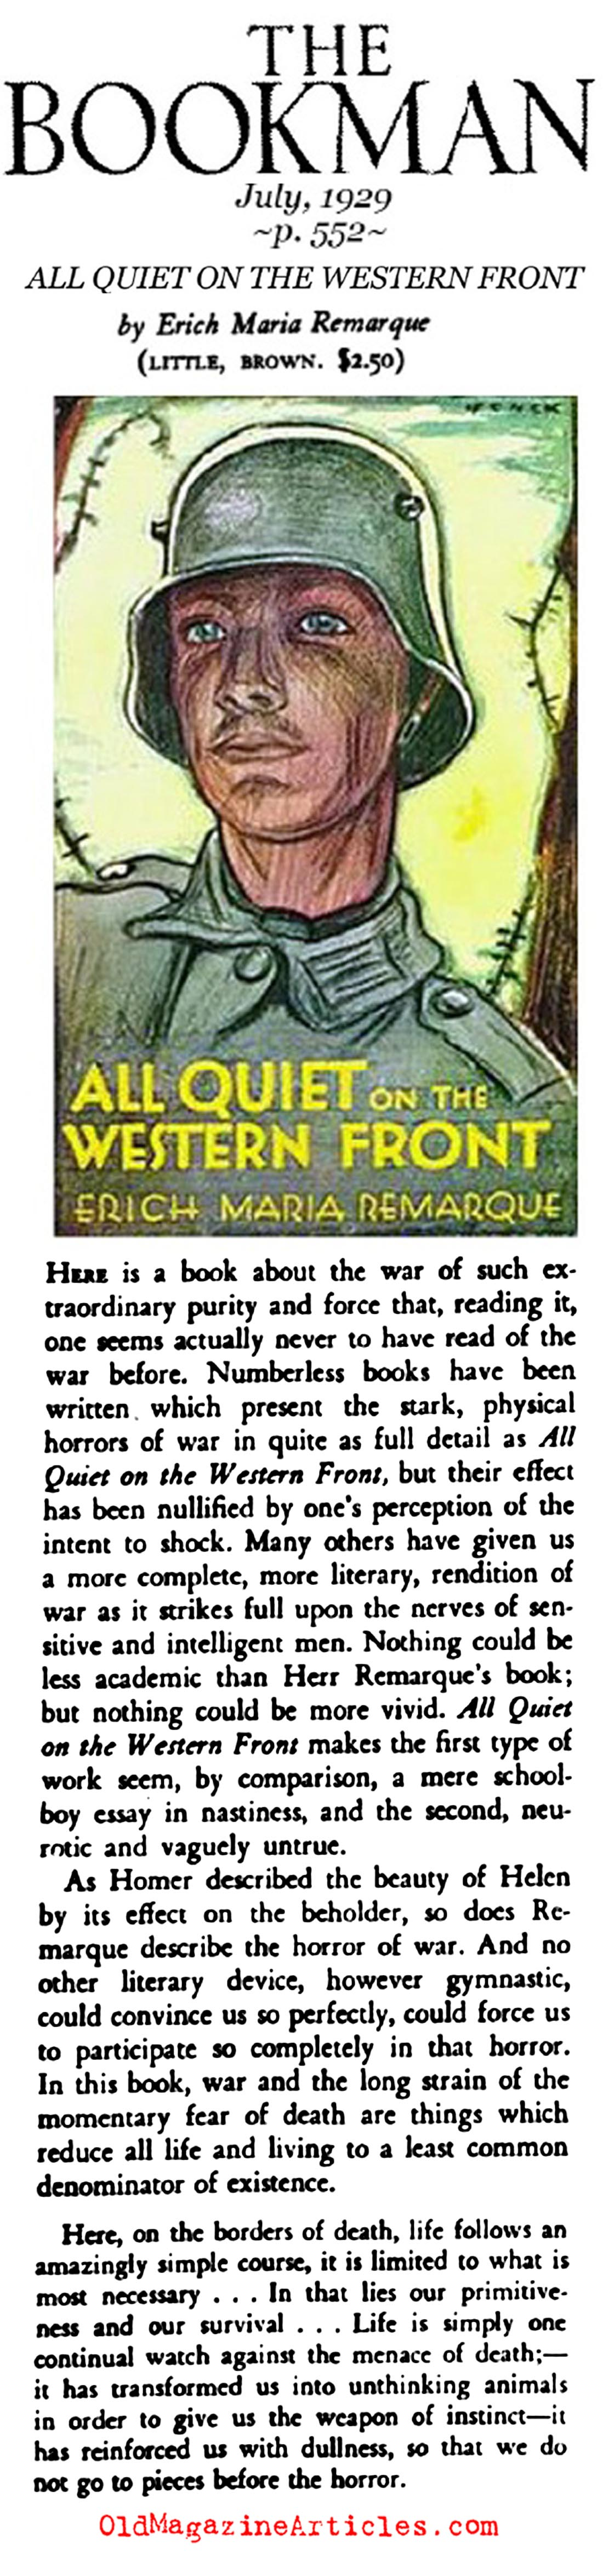 a descriptive review of all quiet on the western front by erich maria remarque Essay writing related to all quiet on the western front essay topics have  written by erich maria remarque,  he arrives at the western front and later.